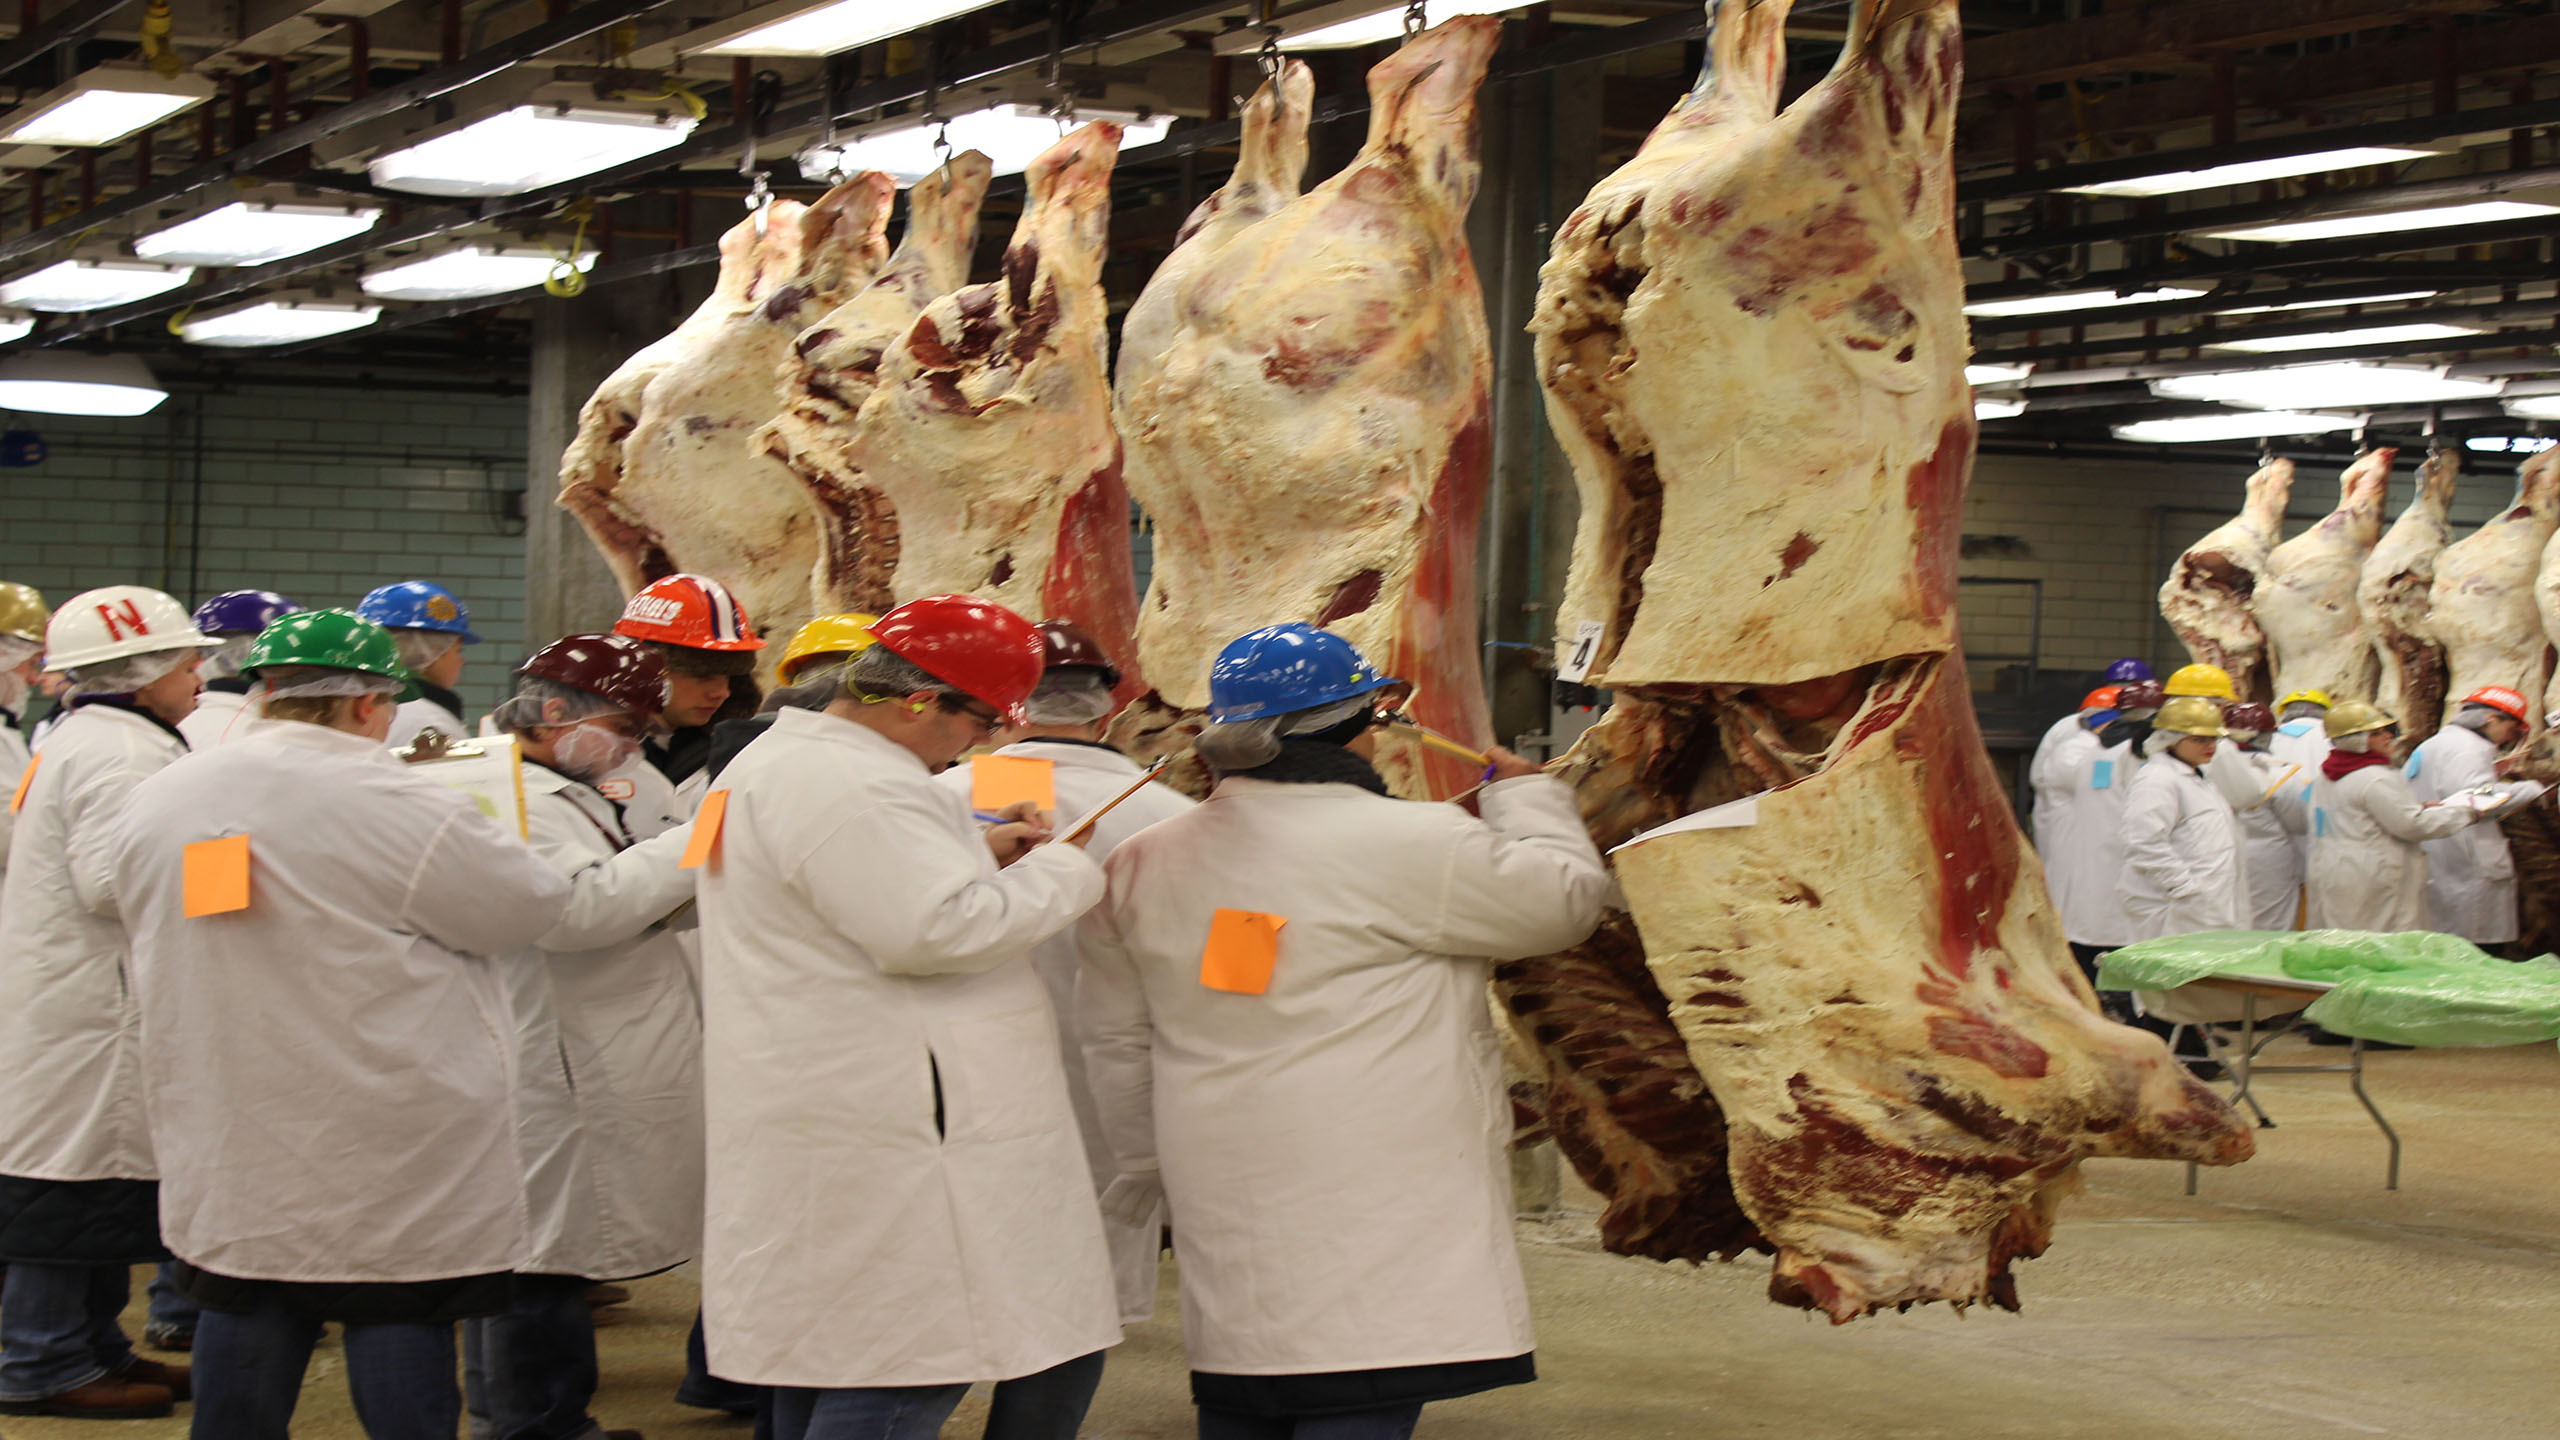 See the Results from the National Western Meat Judging Contest